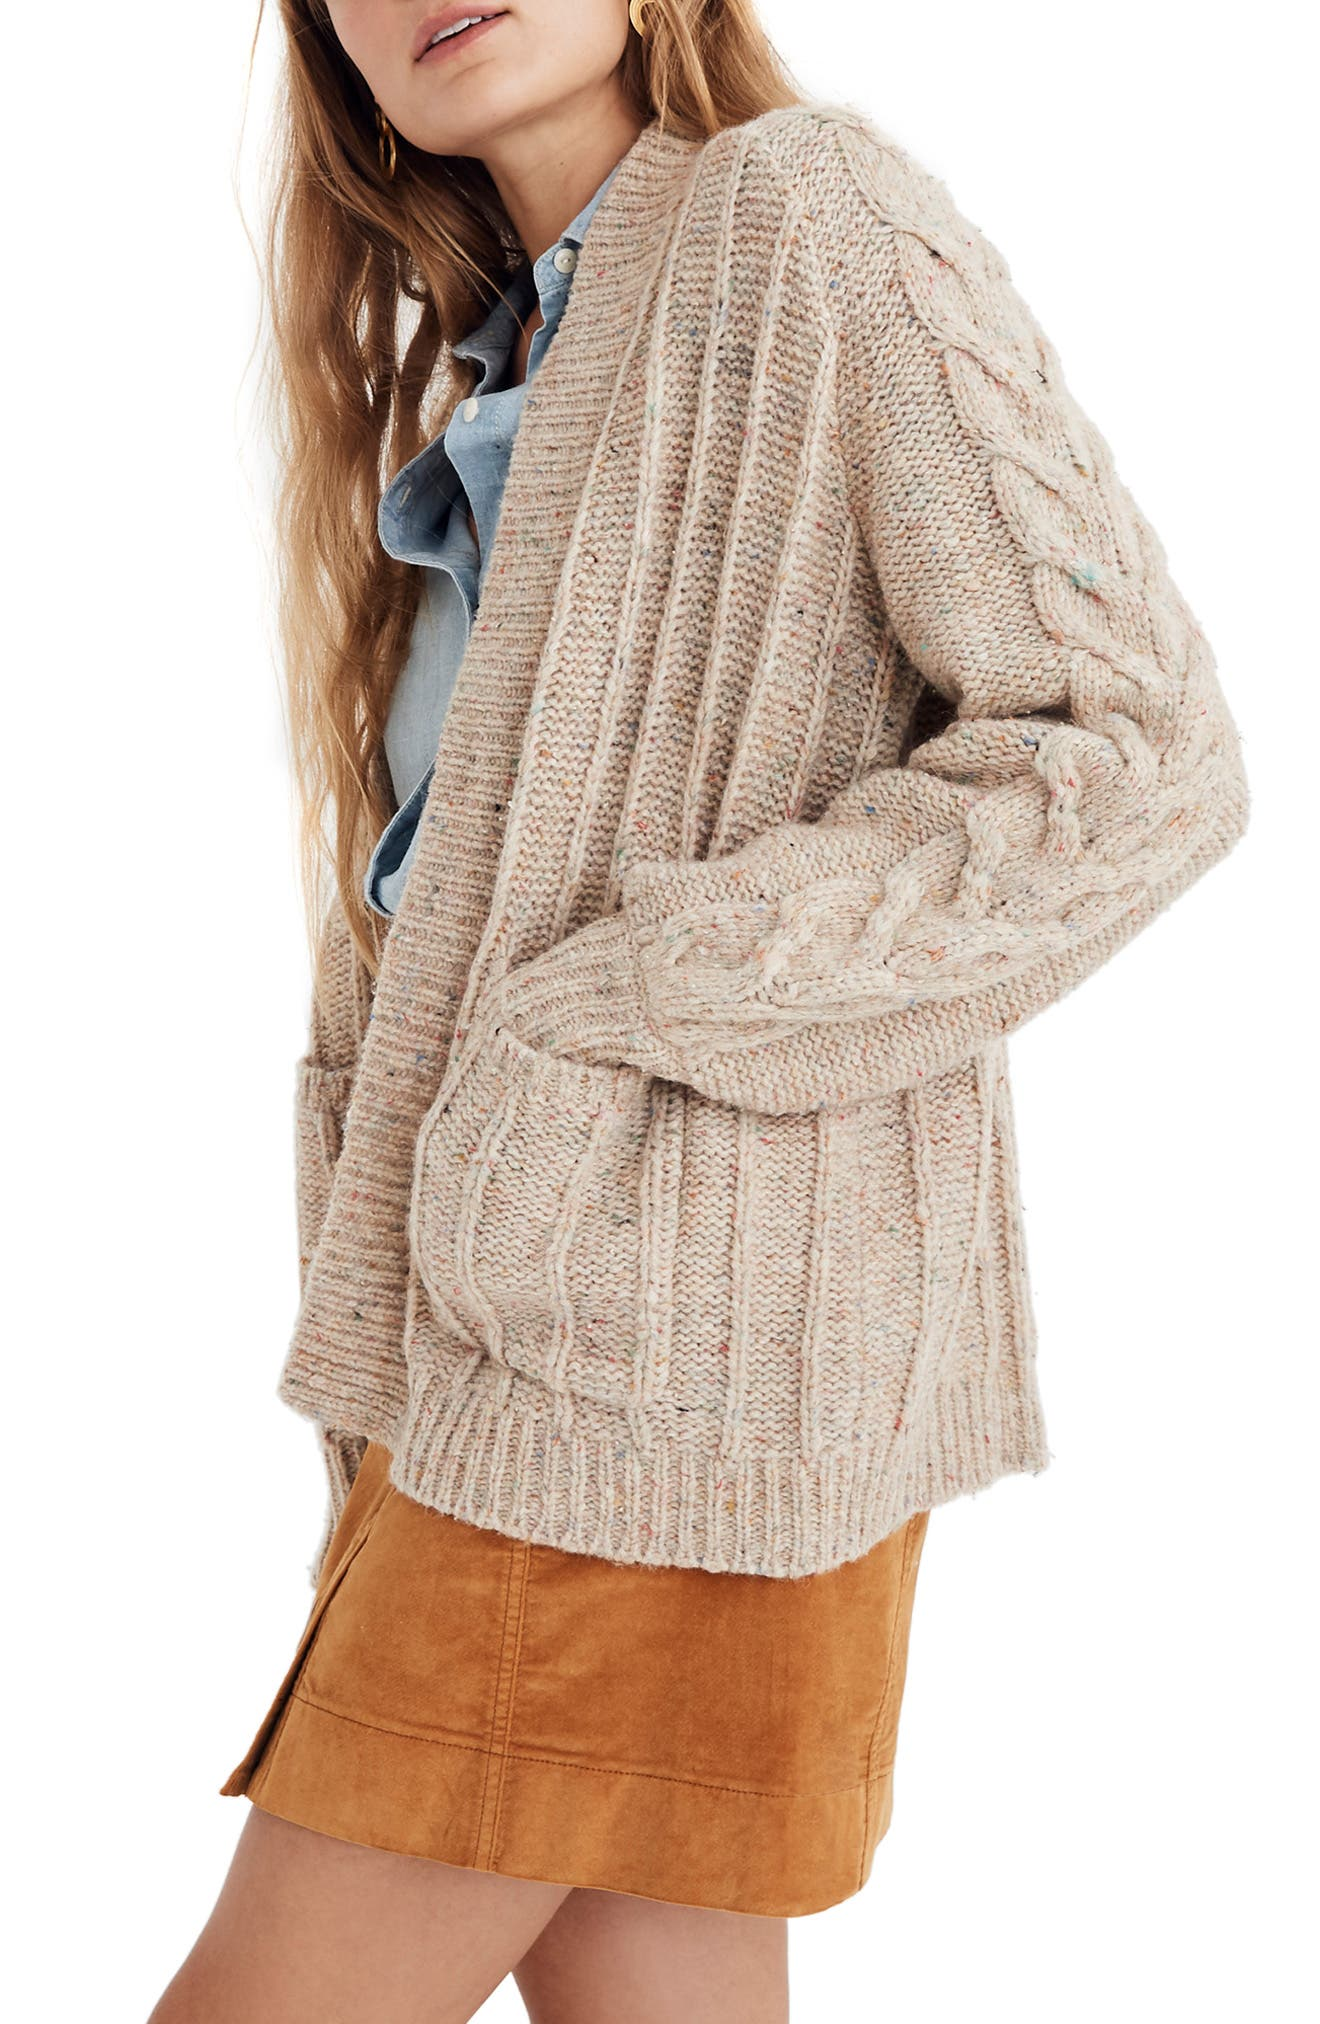 Bubble Sleeve Cable Knit Cardigan Sweater,                             Alternate thumbnail 3, color,                             DONEGAL FUNFETTI